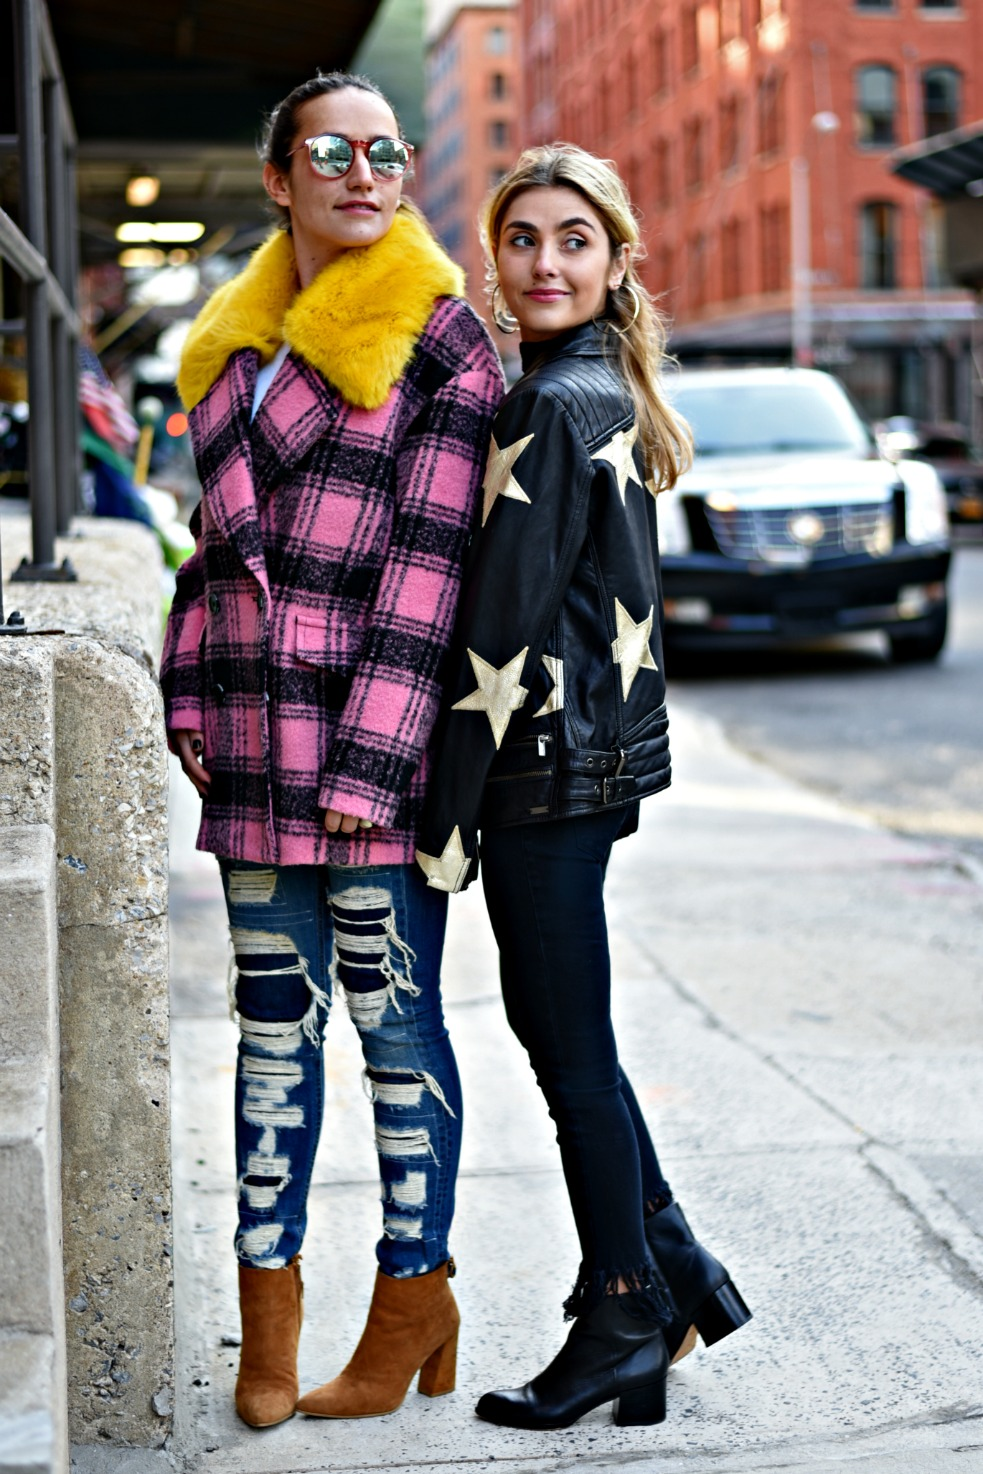 SOPHIE & CHARLOTTE BICKLEY YIN 2MY YANG SISTER FASHION BLOGGER SCOTCH & SODA POST